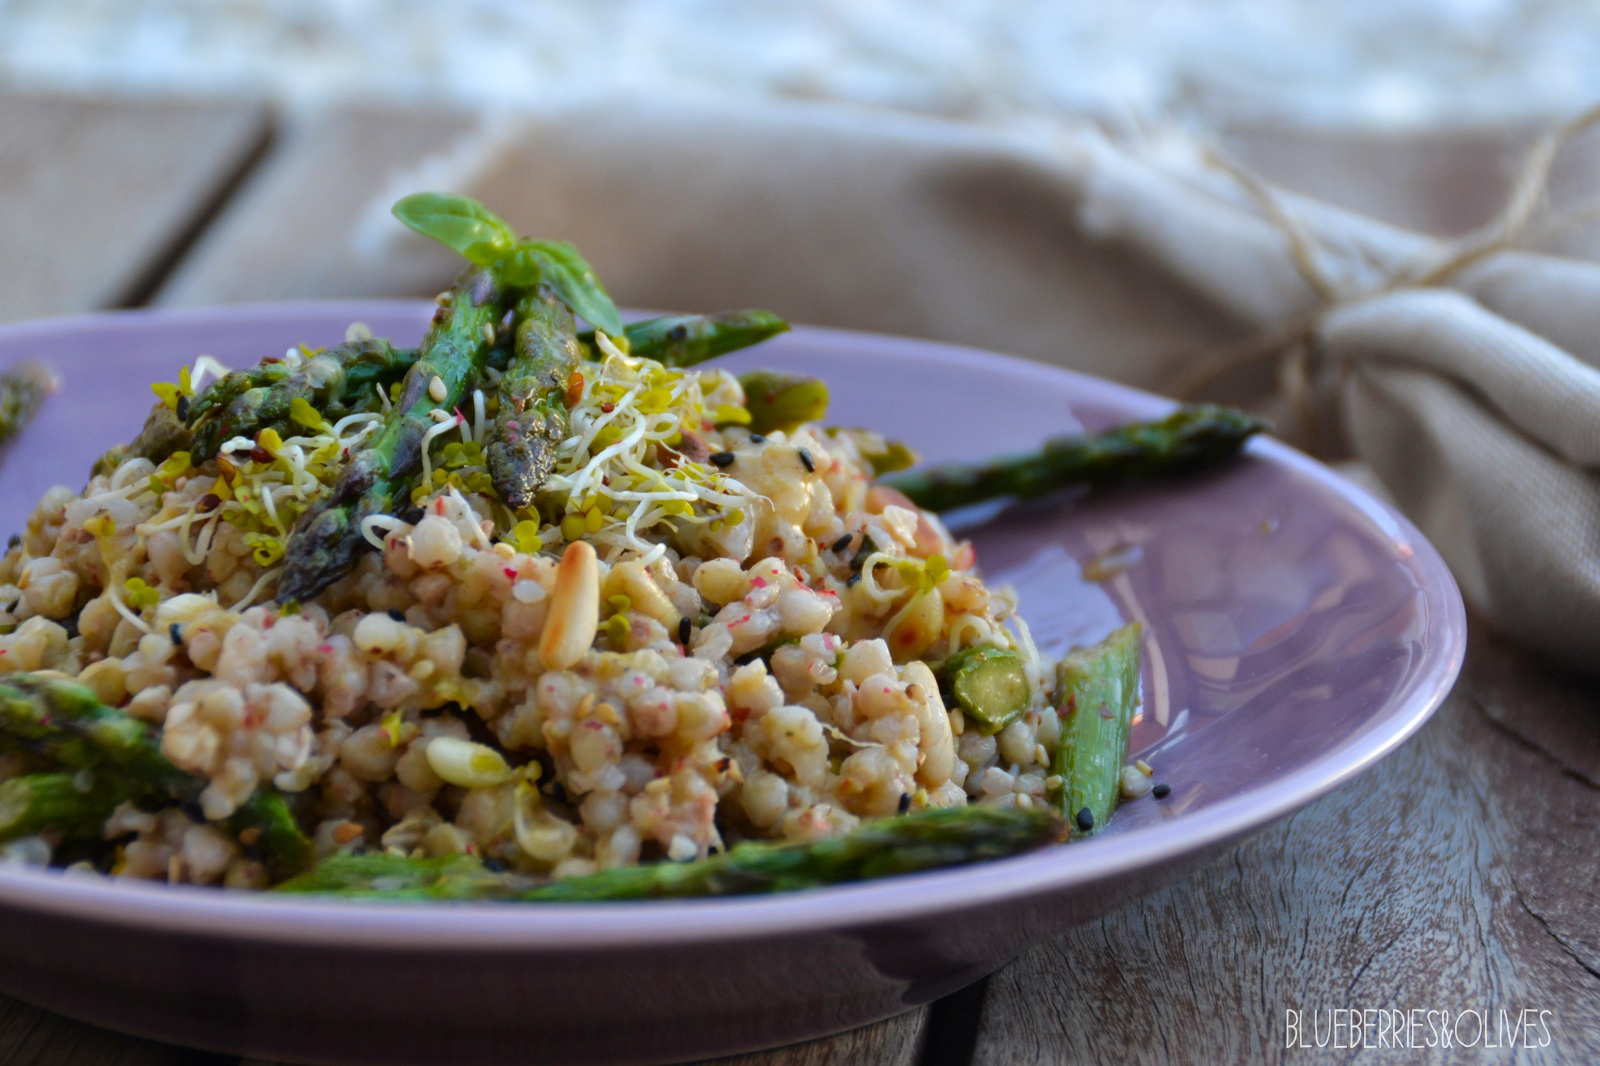 BUCKWHEAT AND ASPARAGUS SALAD WITH TAHINI DRESSING